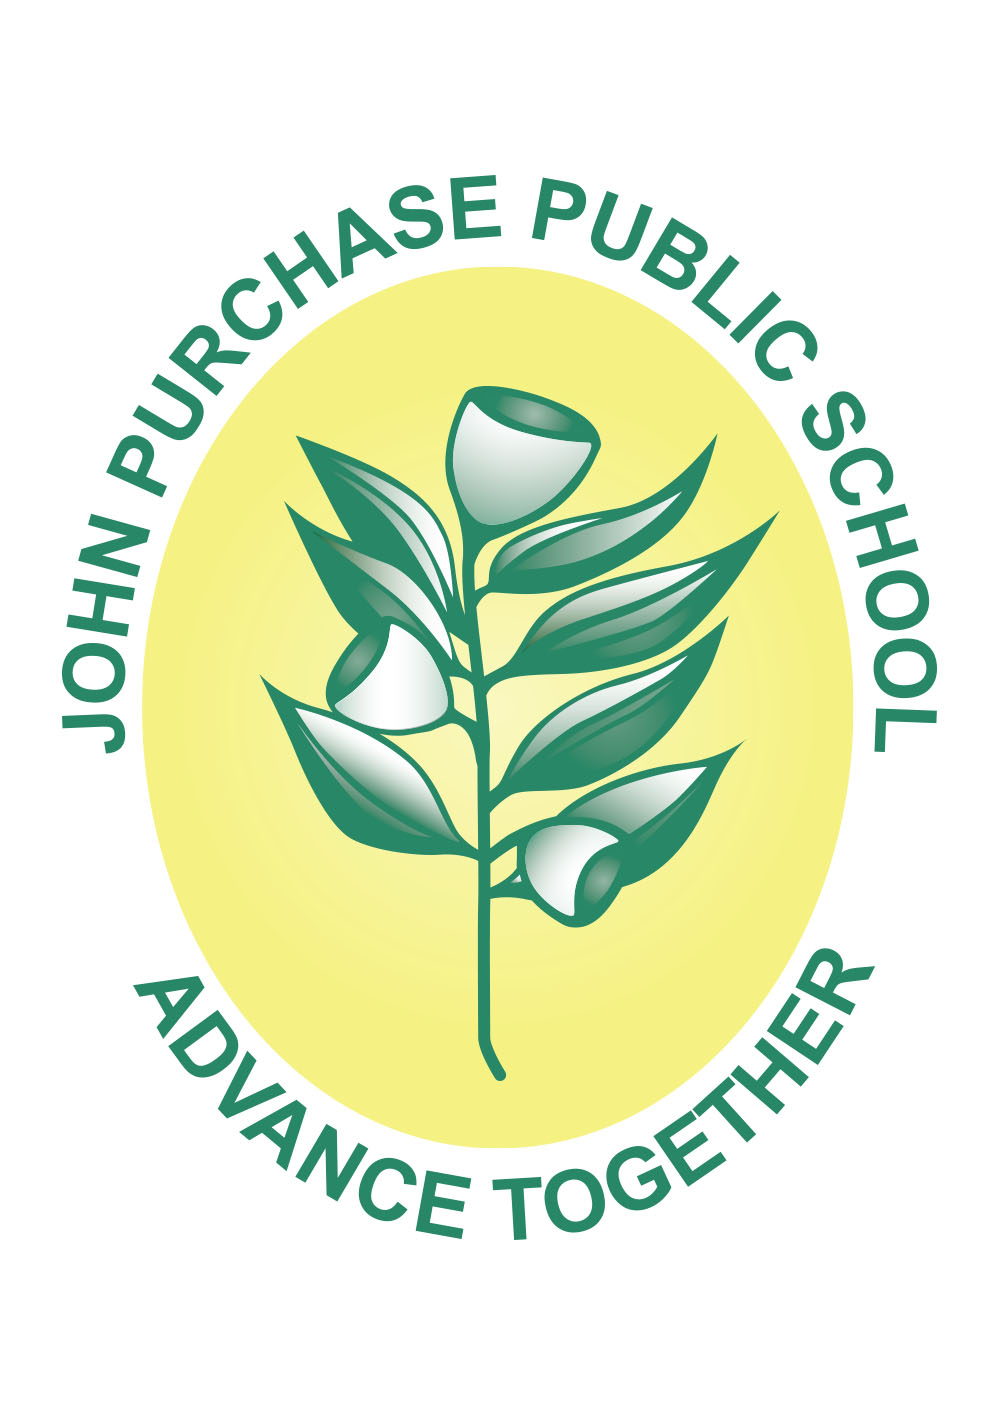 John Purchase Public School logo